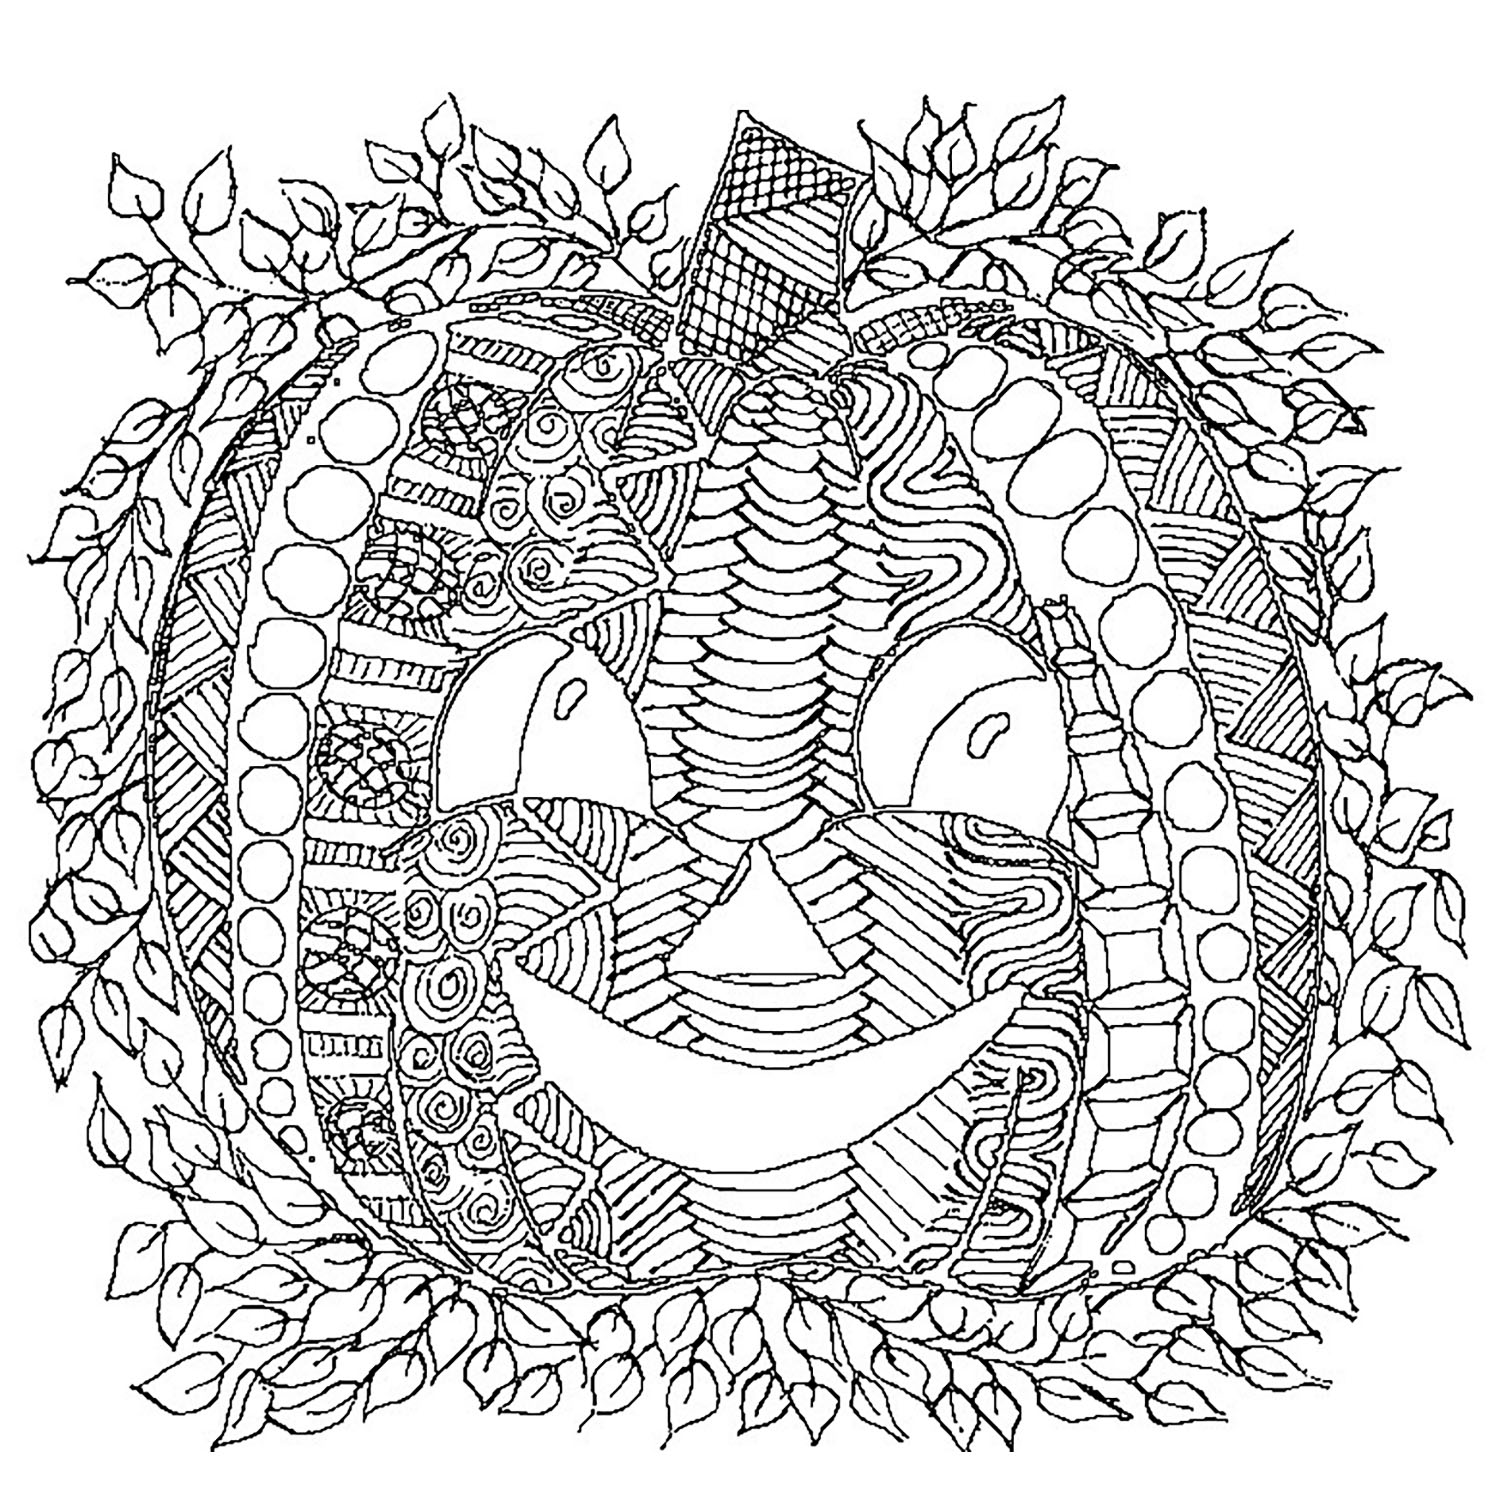 Halloween coloring page with few details for kids